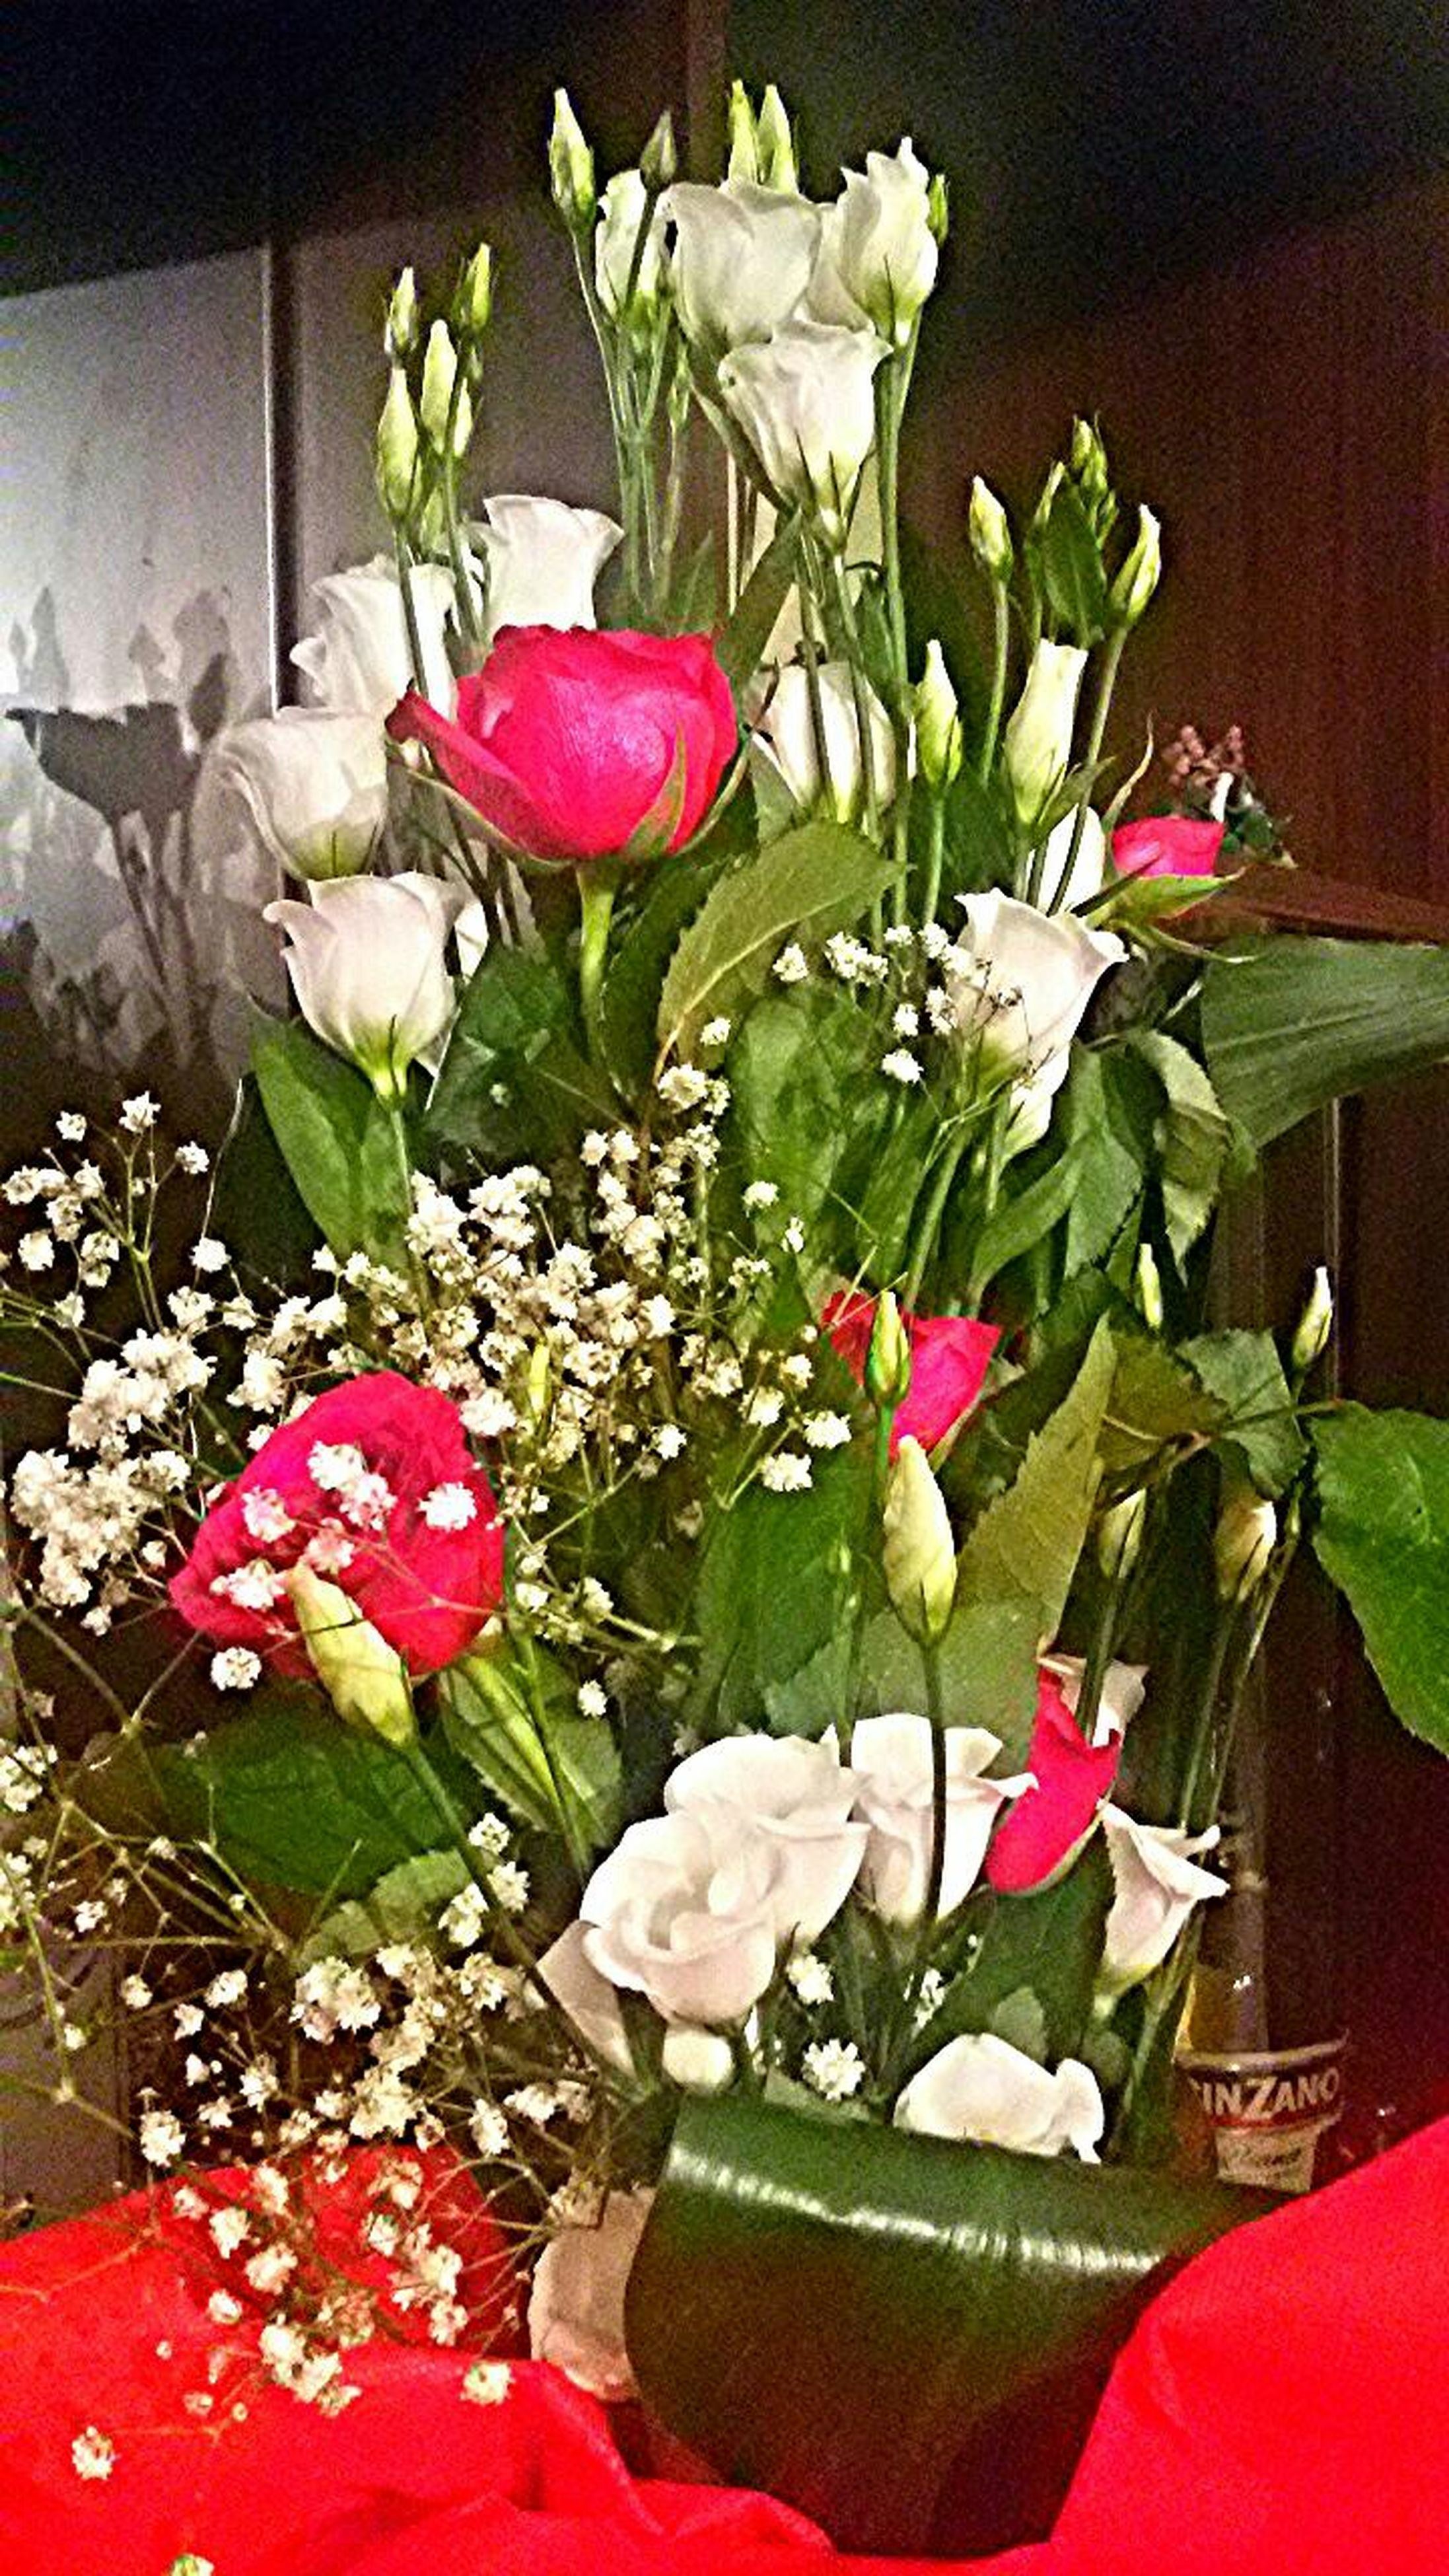 flower, petal, indoors, freshness, fragility, flower head, red, vase, growth, beauty in nature, rose - flower, decoration, close-up, bouquet, white color, nature, leaf, plant, pink color, table